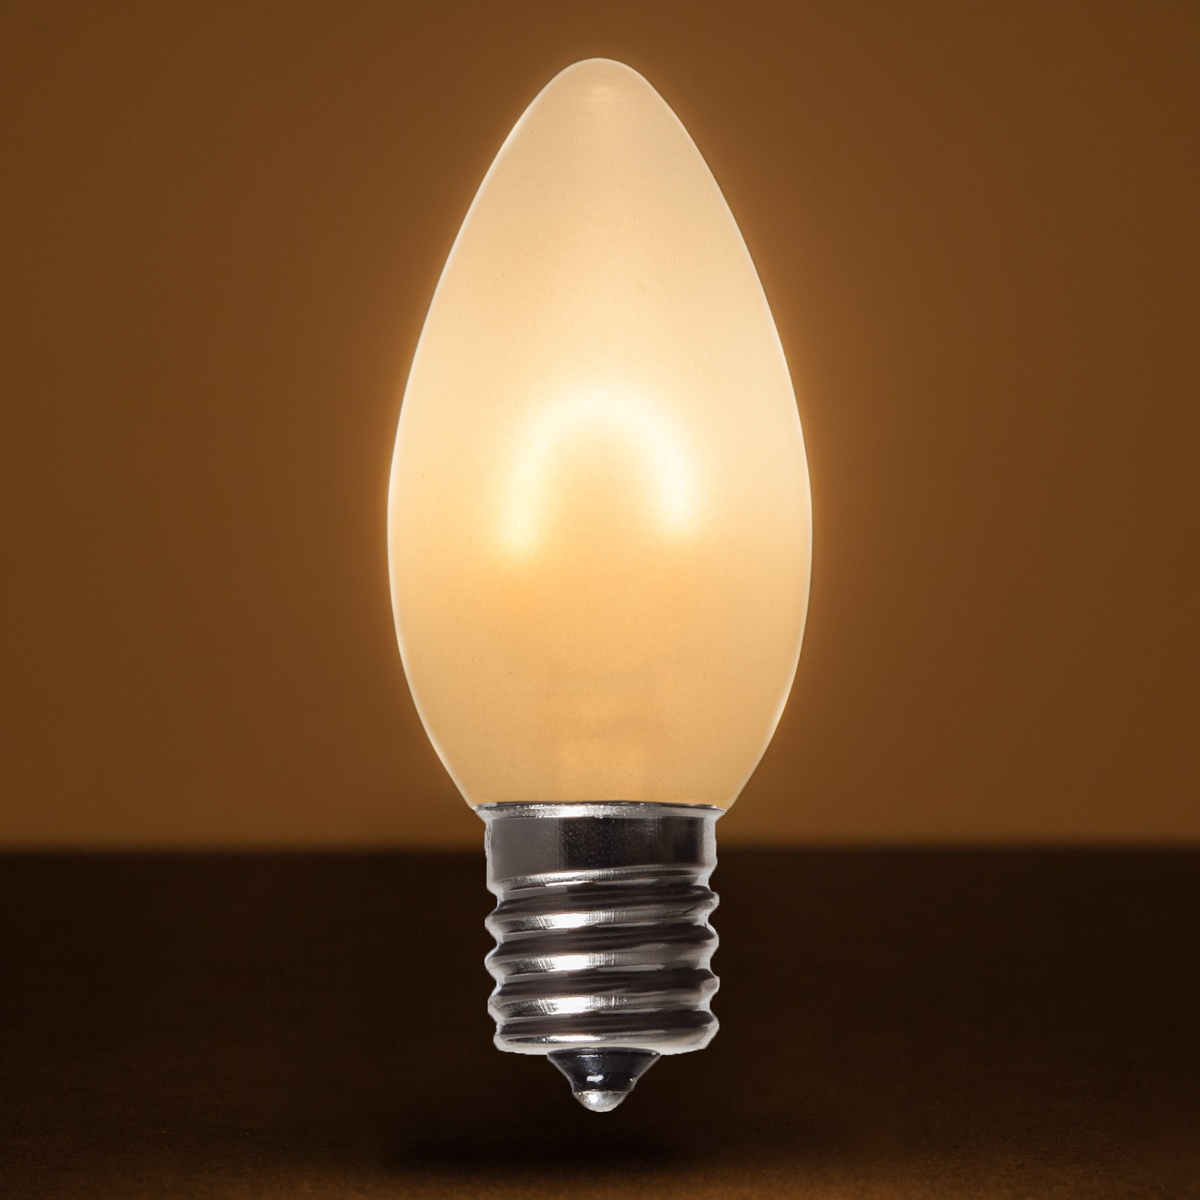 Mini Light Bulbs